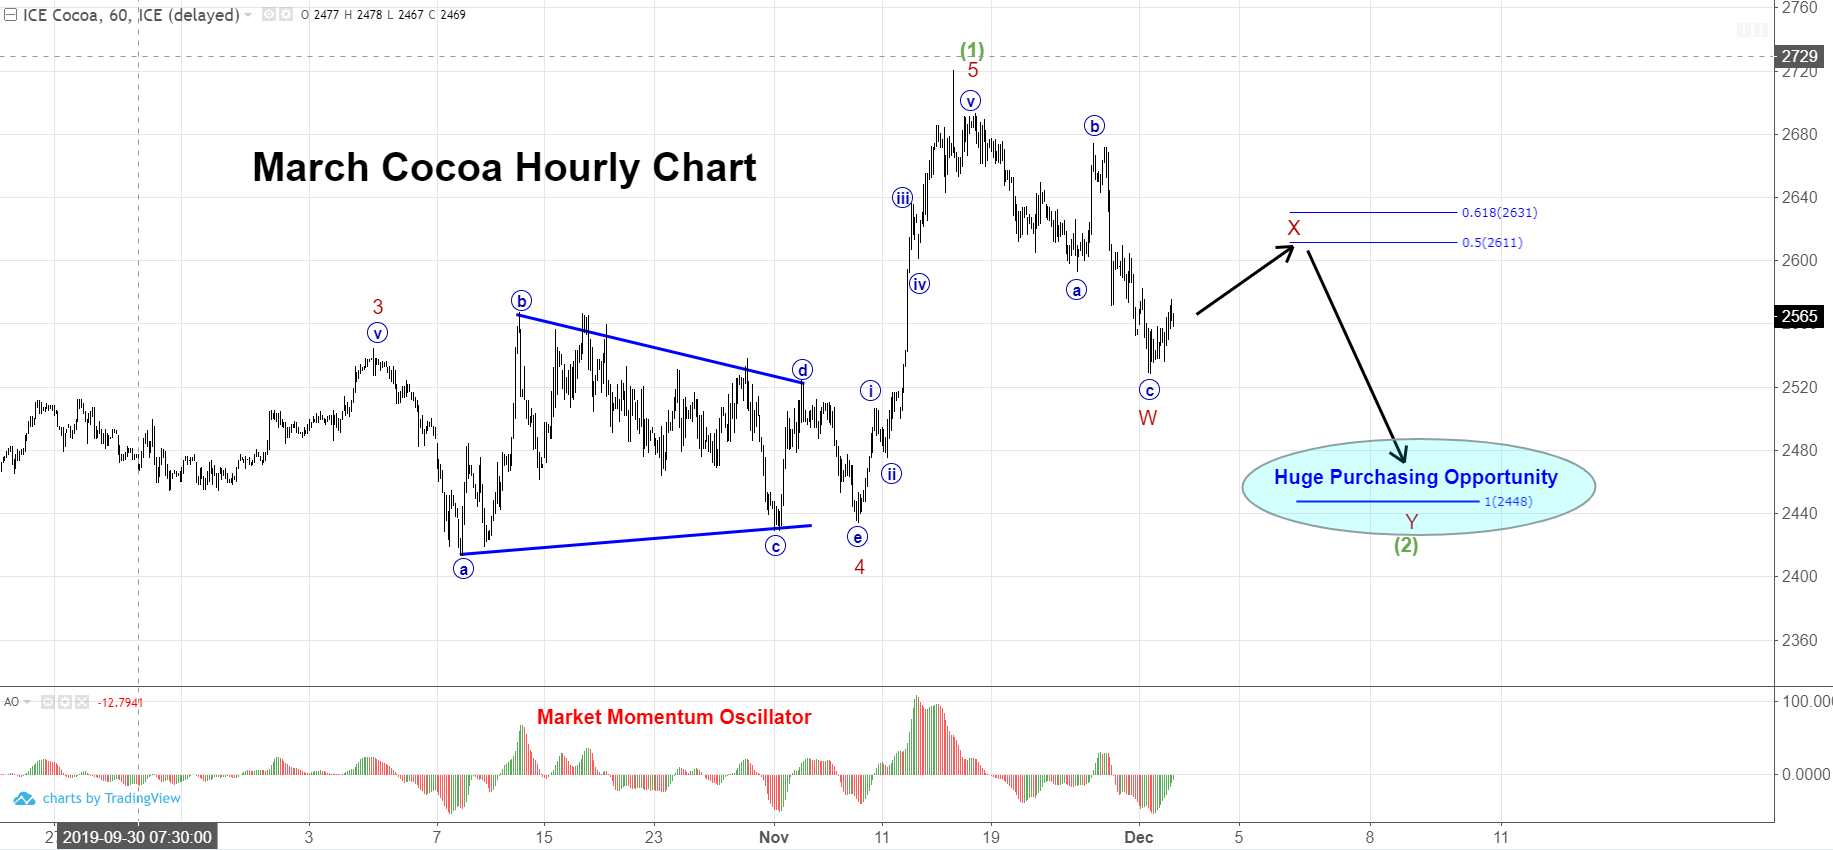 March Cocoa Hourly Chart